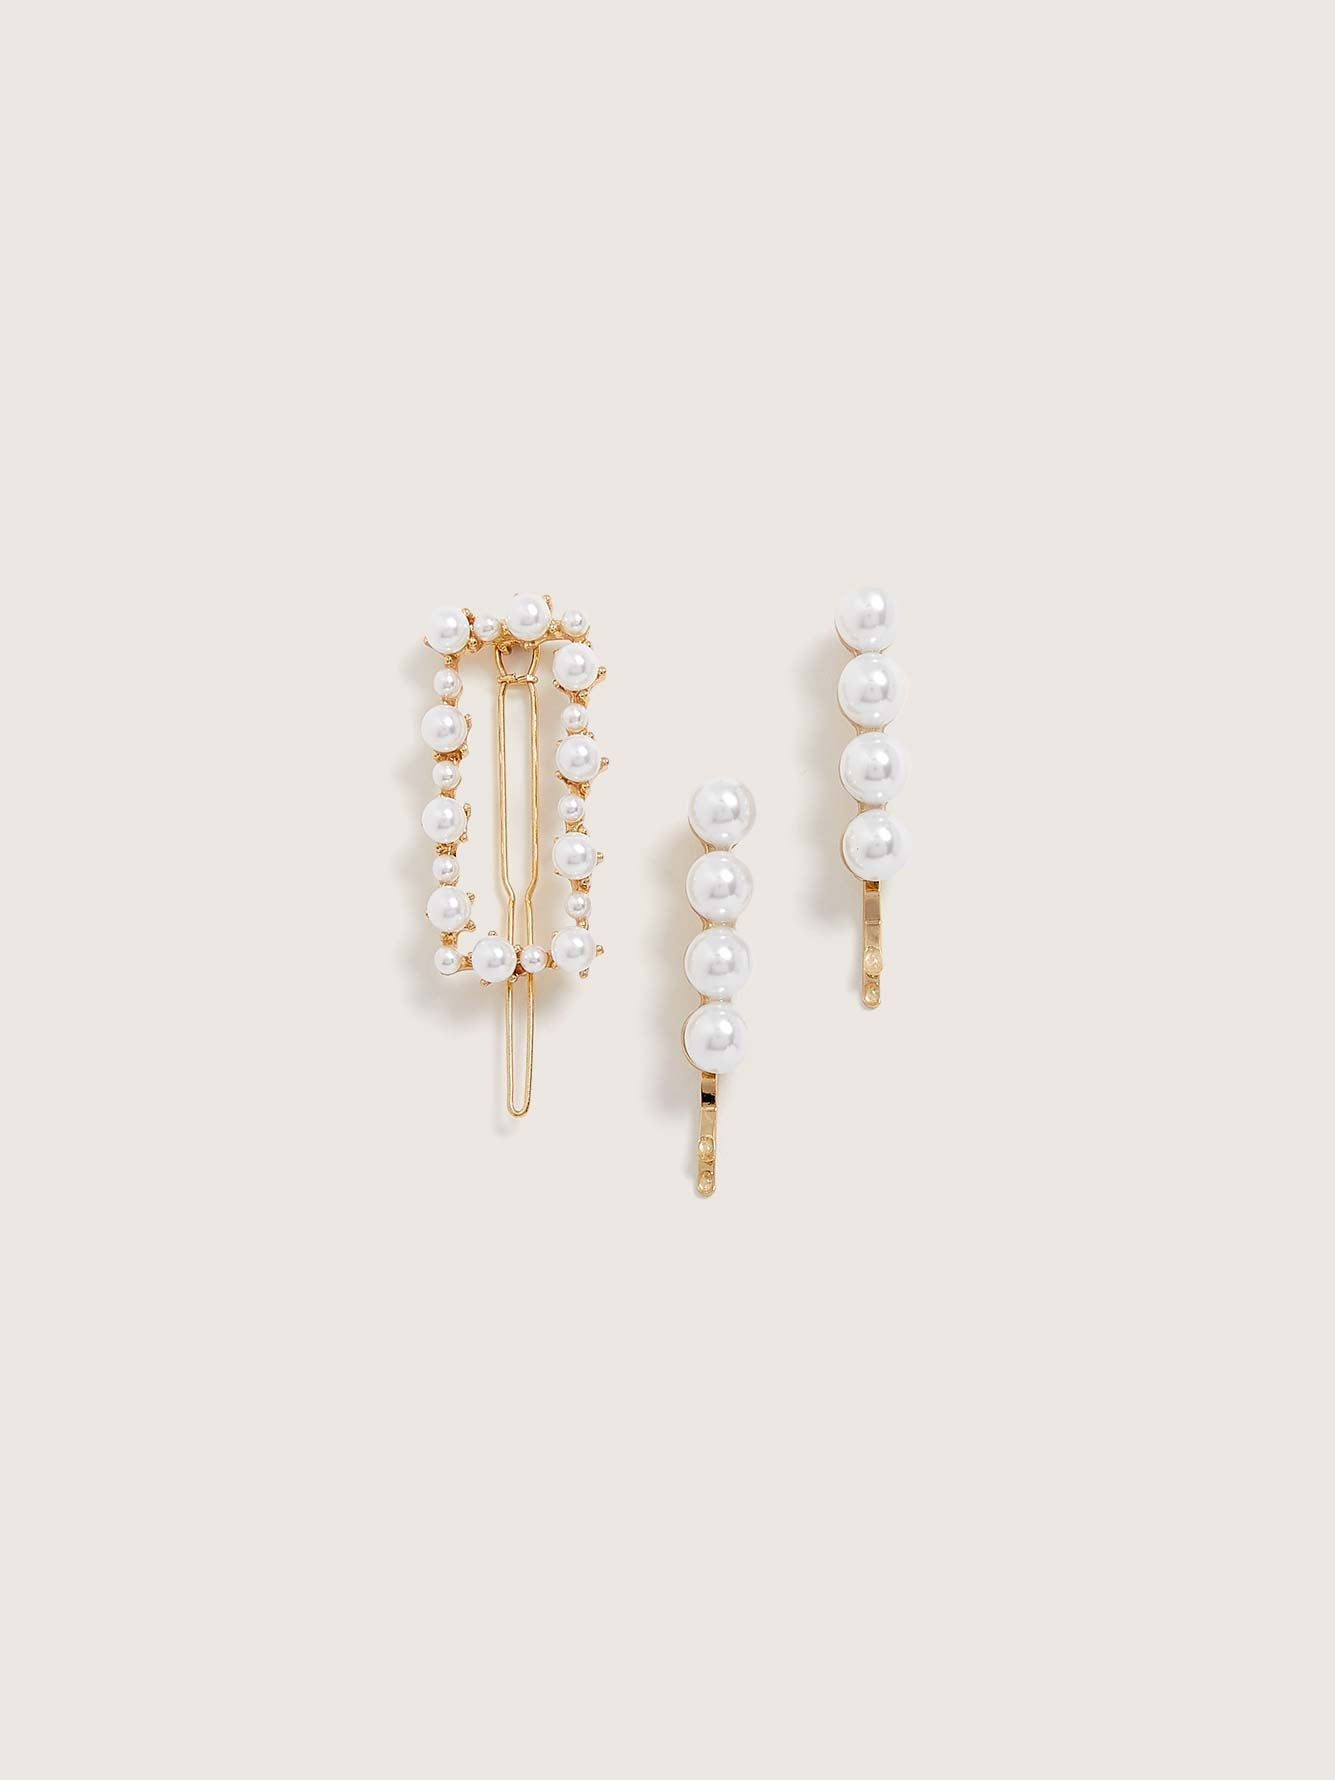 Faux Pearl Barrette and Clips, Pack of 3 - Addition Elle